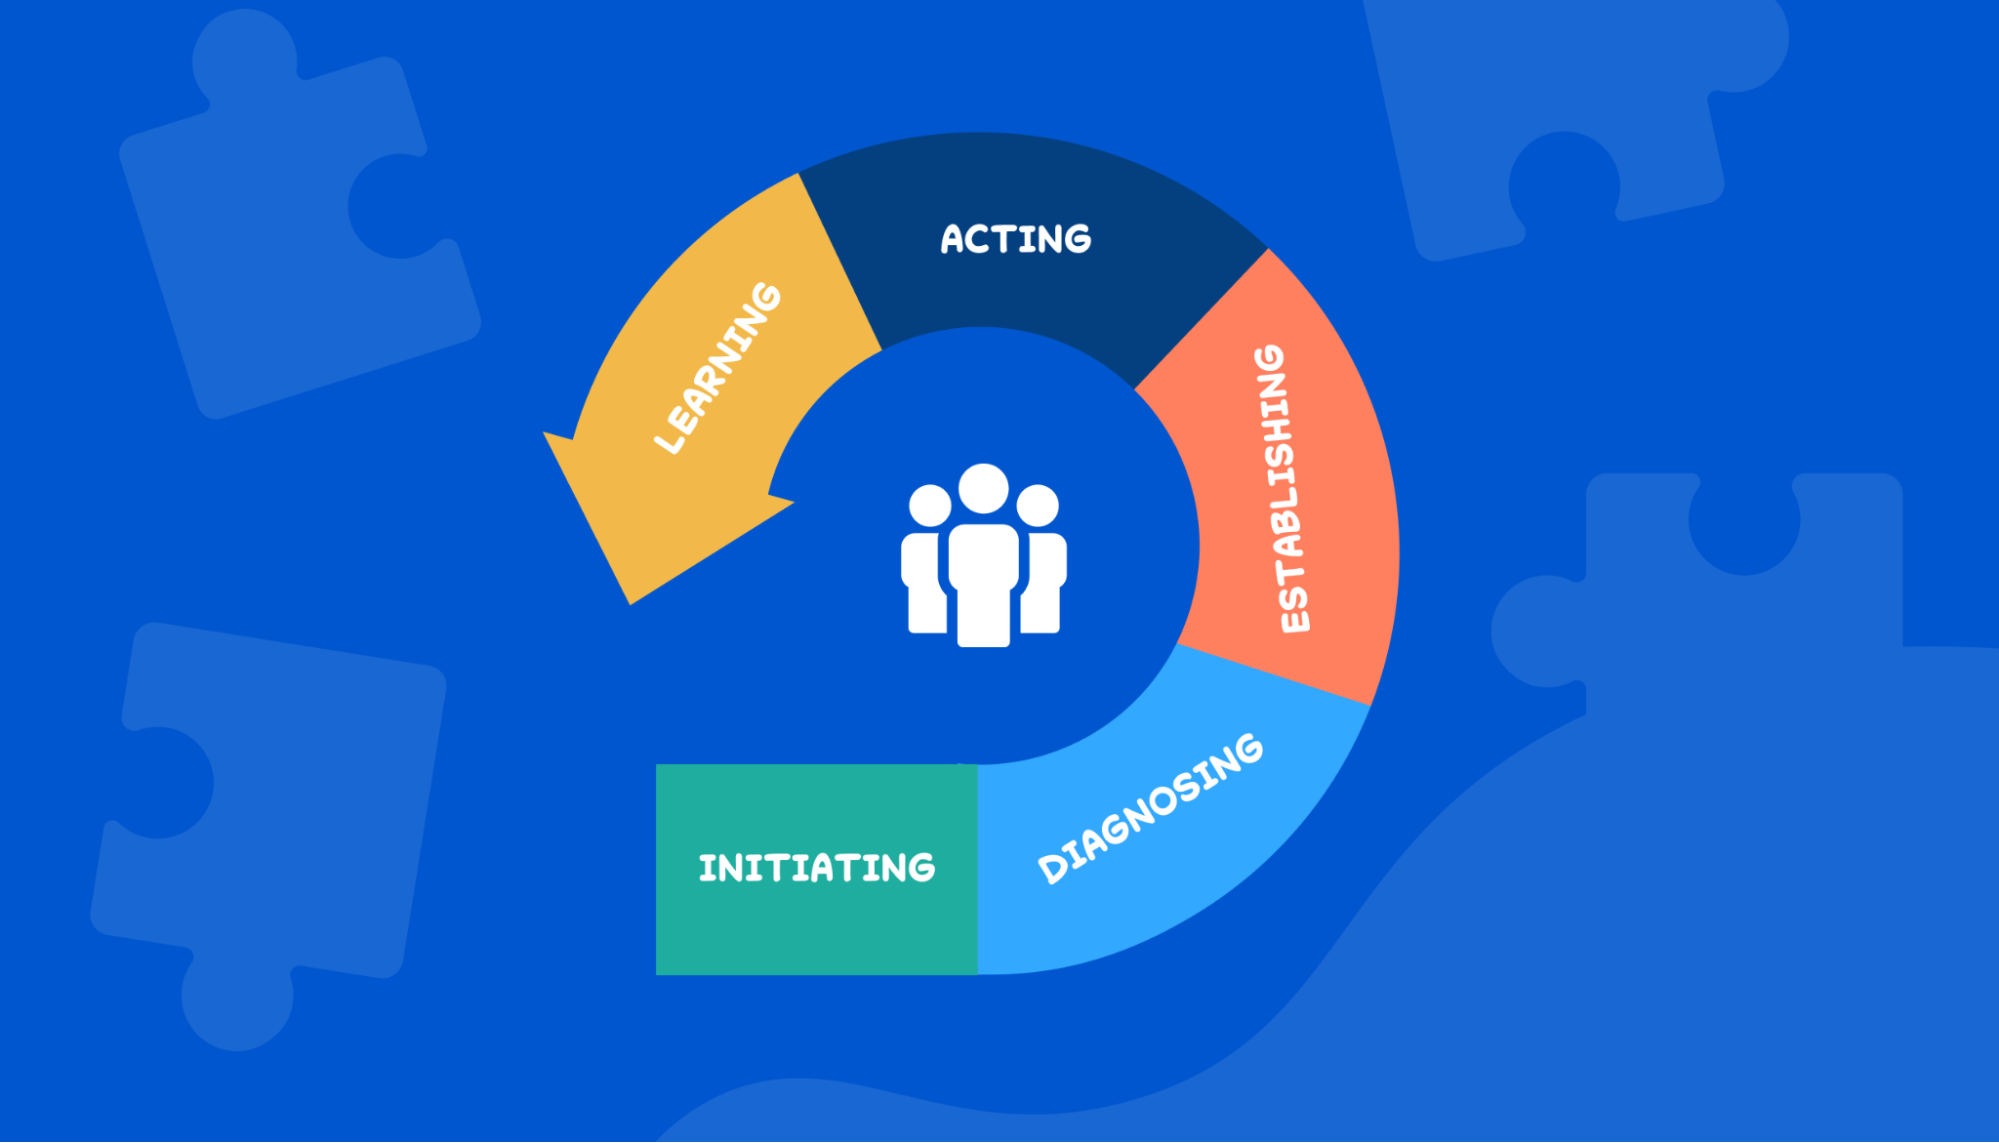 IDEAL Scrum methodology for process improvement